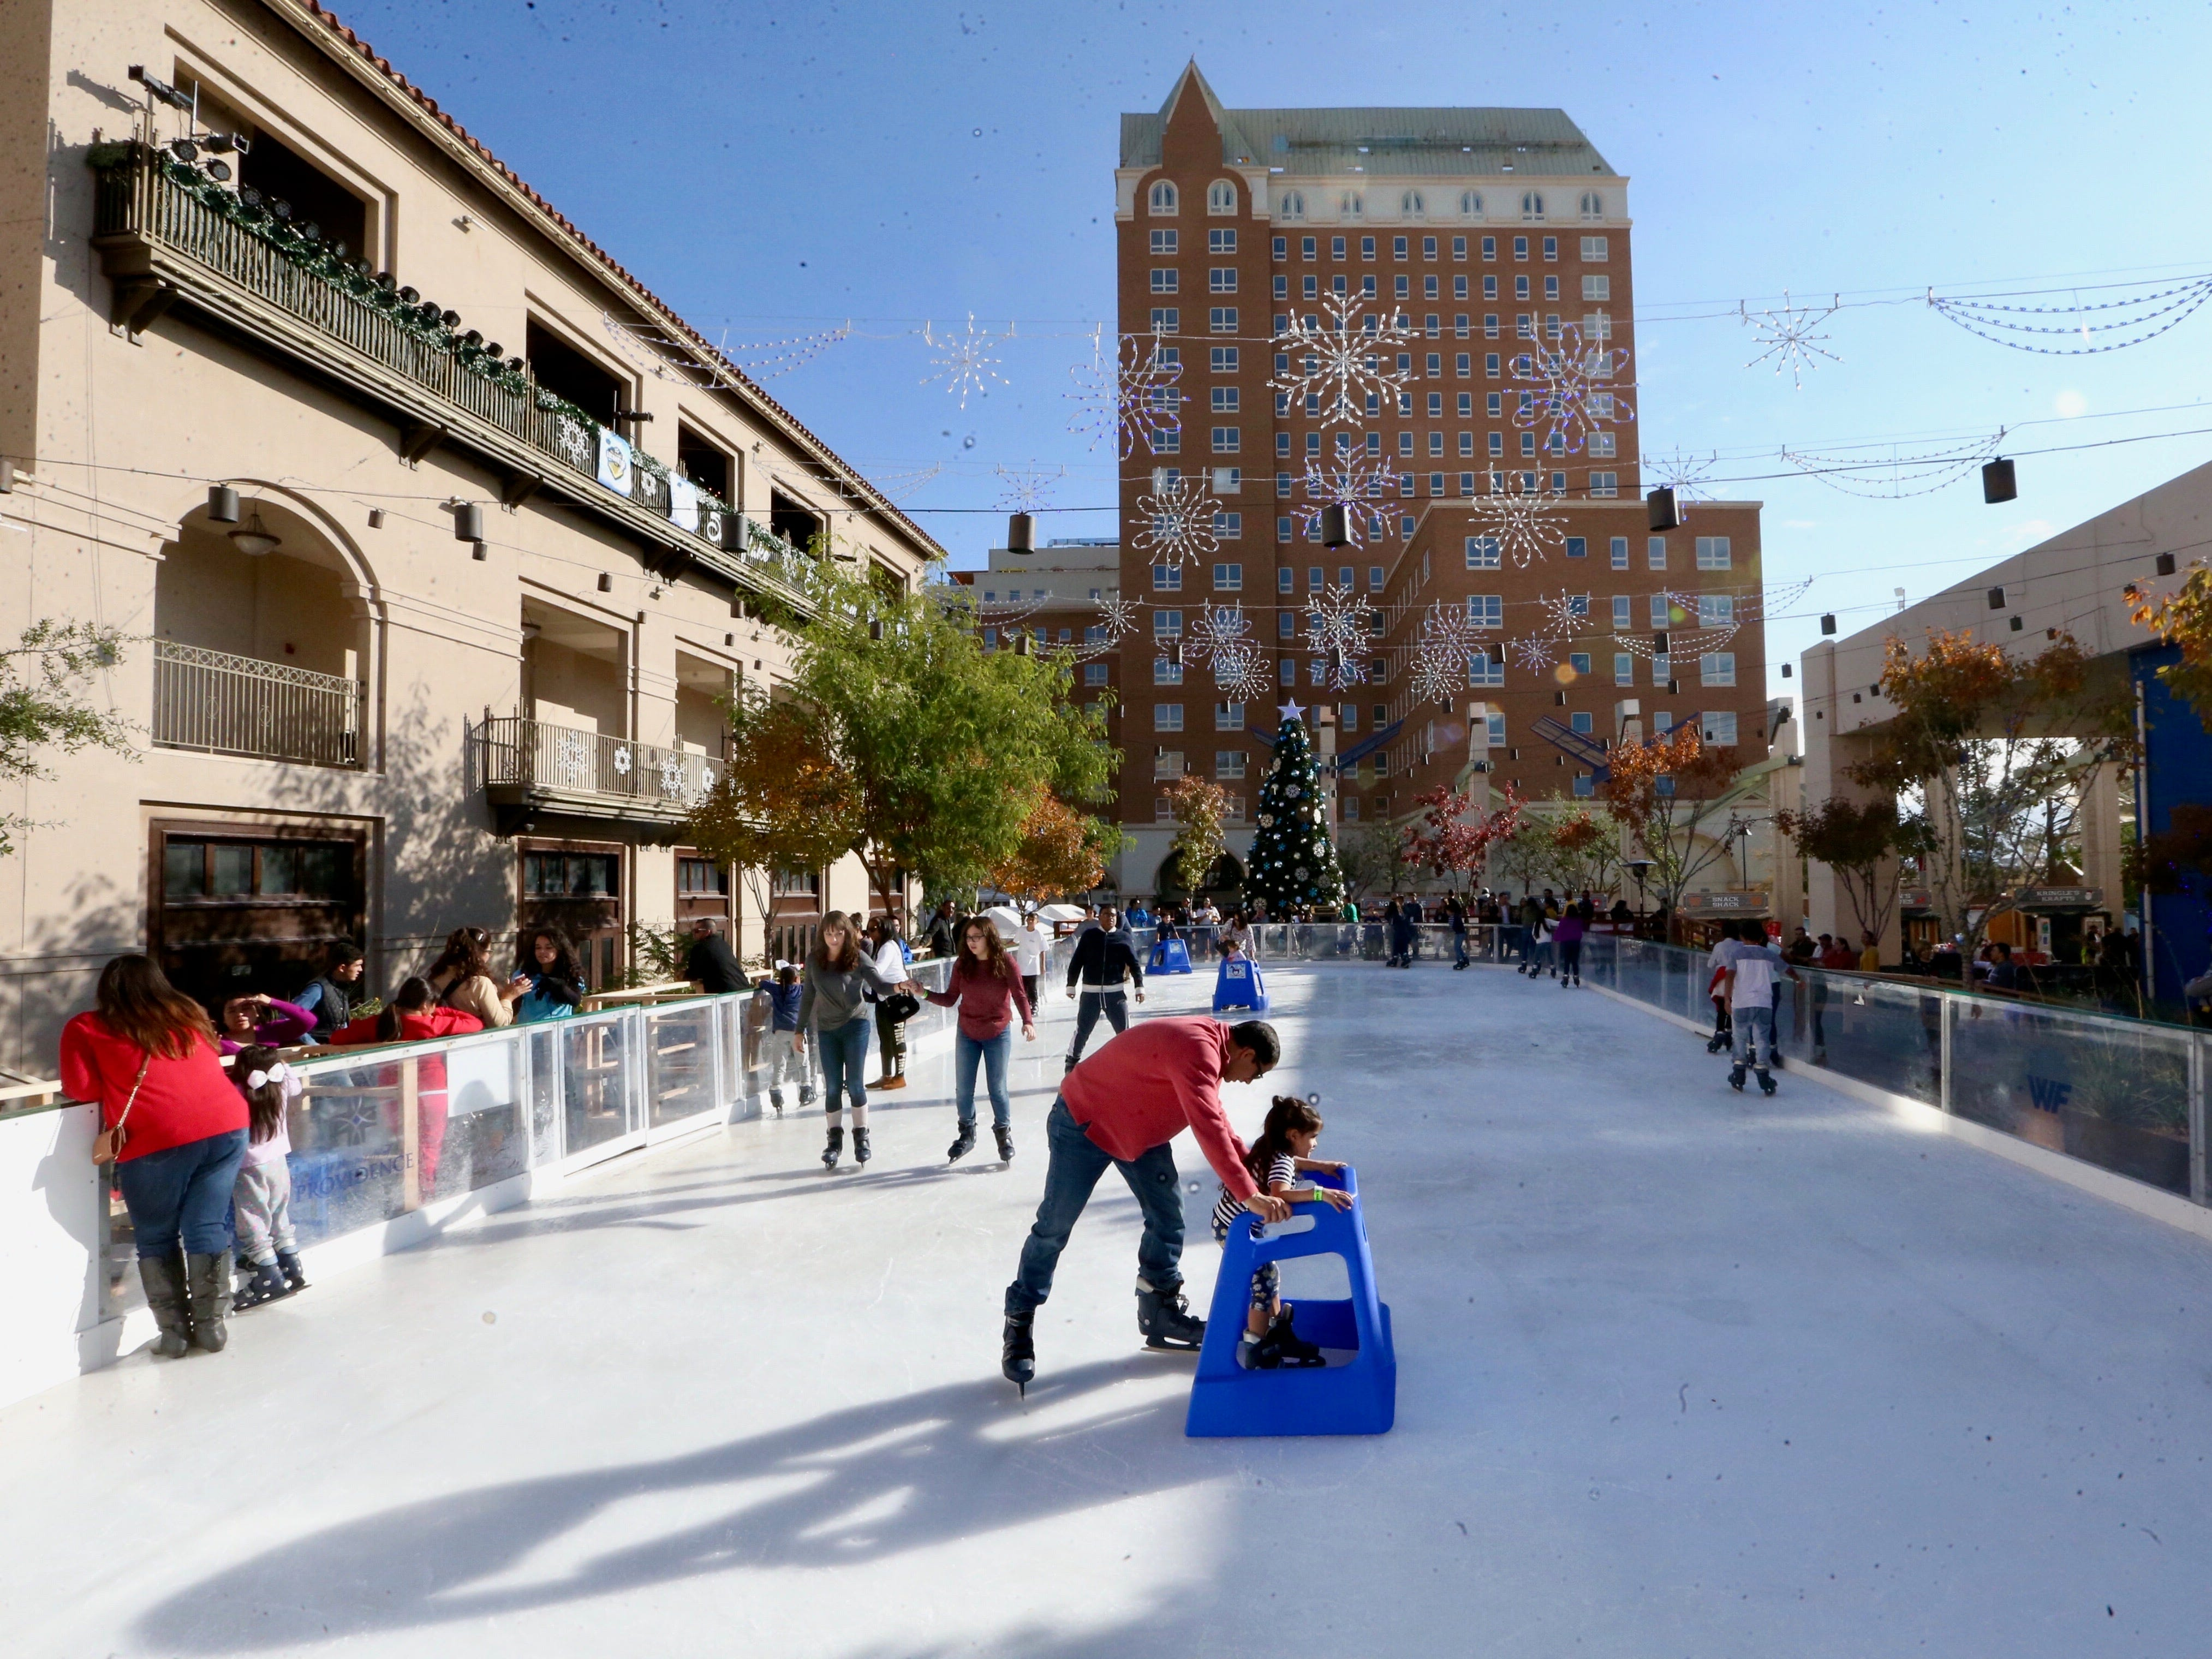 WinterFest 2018 draws ice skaters as holiday decorations fill Downtown El Paso